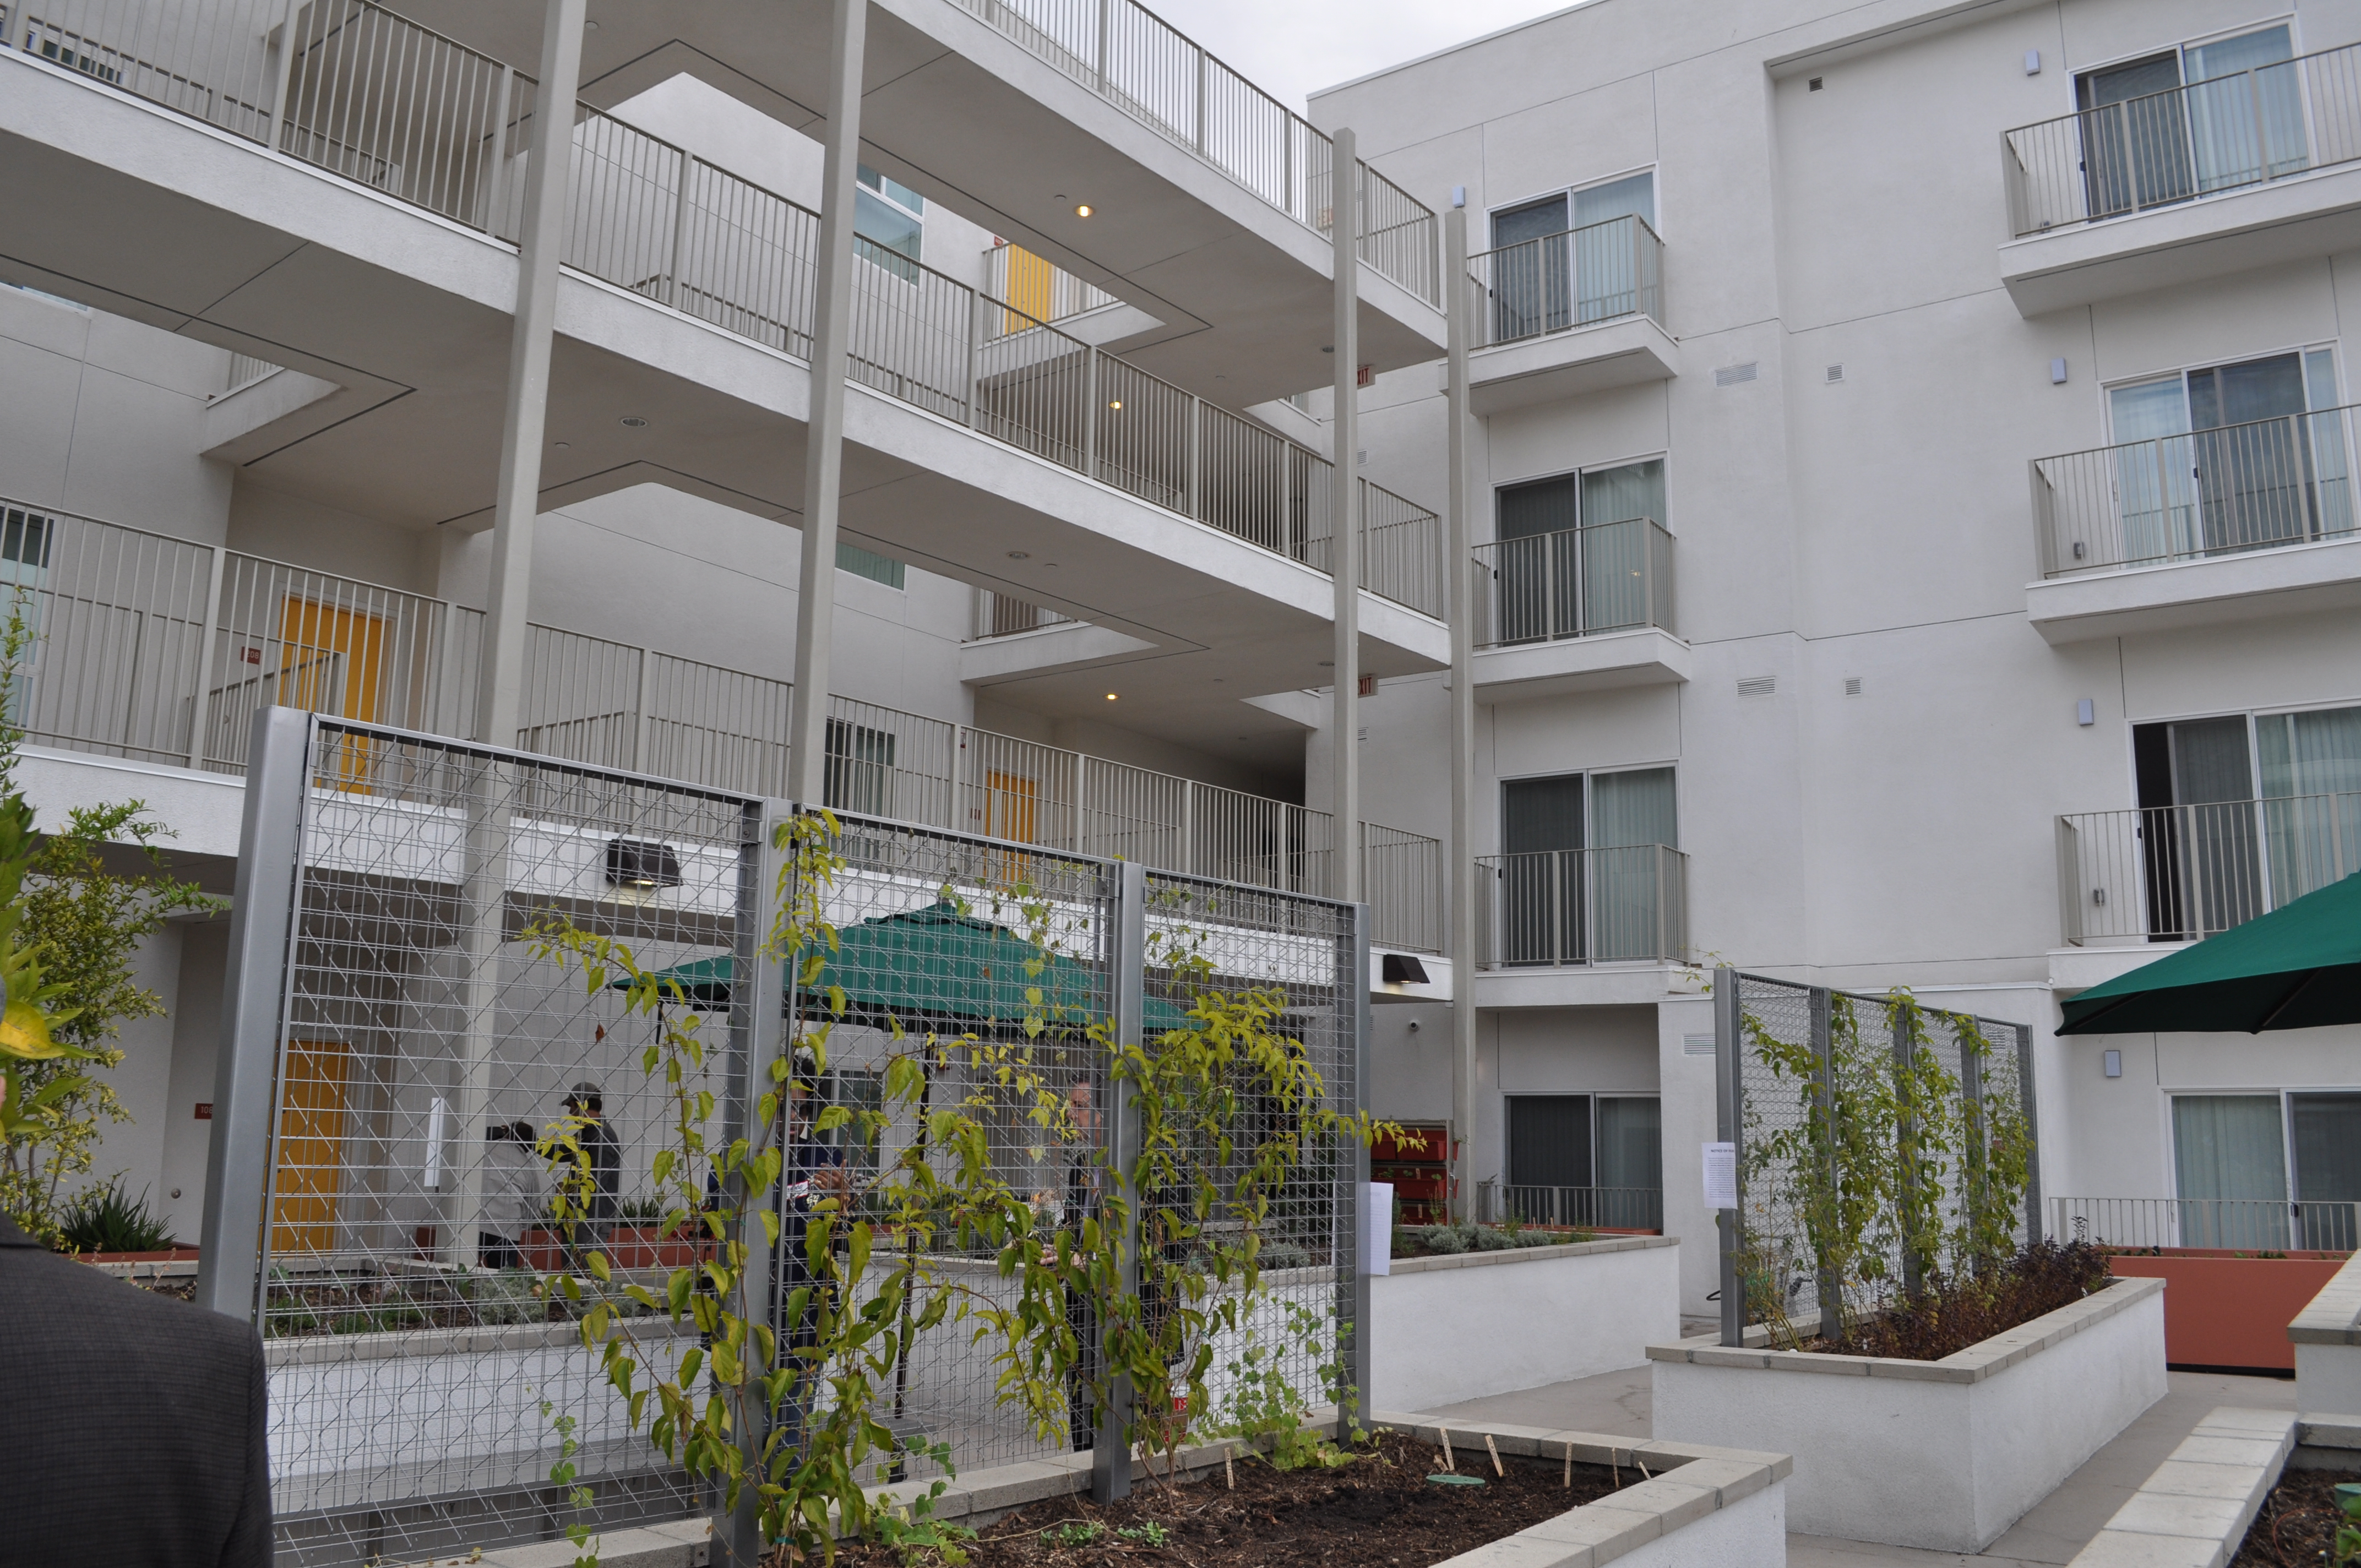 Image of Teague Terrace Apartments in Los Angeles, California